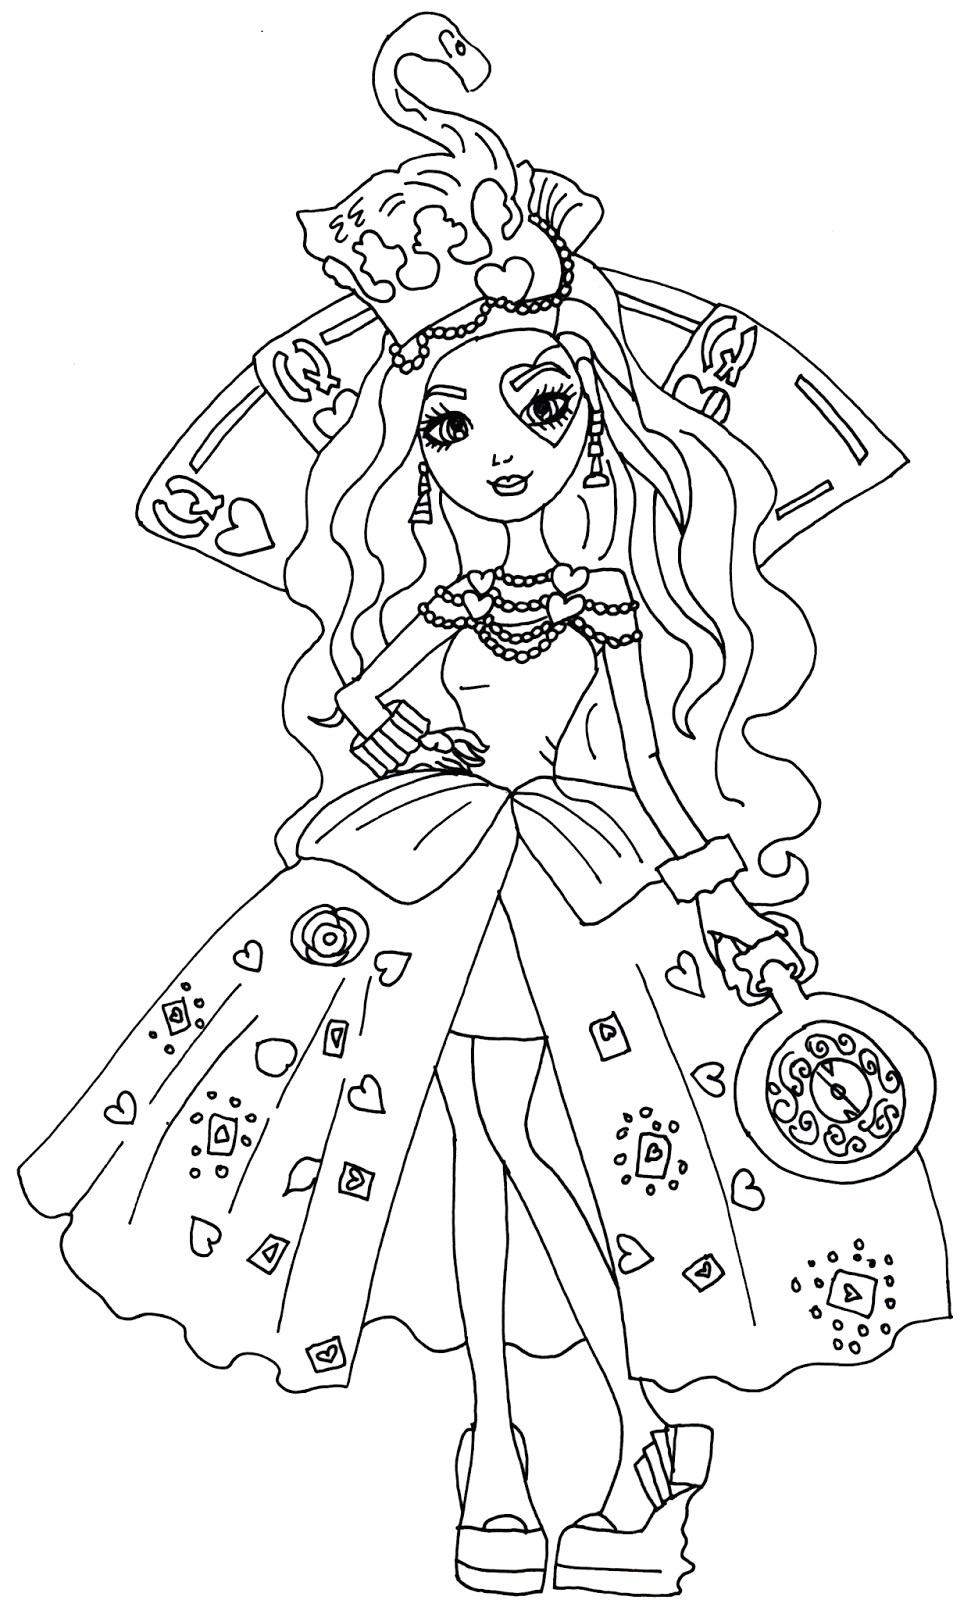 Ever after High Lizzie Hearts Coloring Pages Free Printable Ever after High Coloring Pages Lizzie